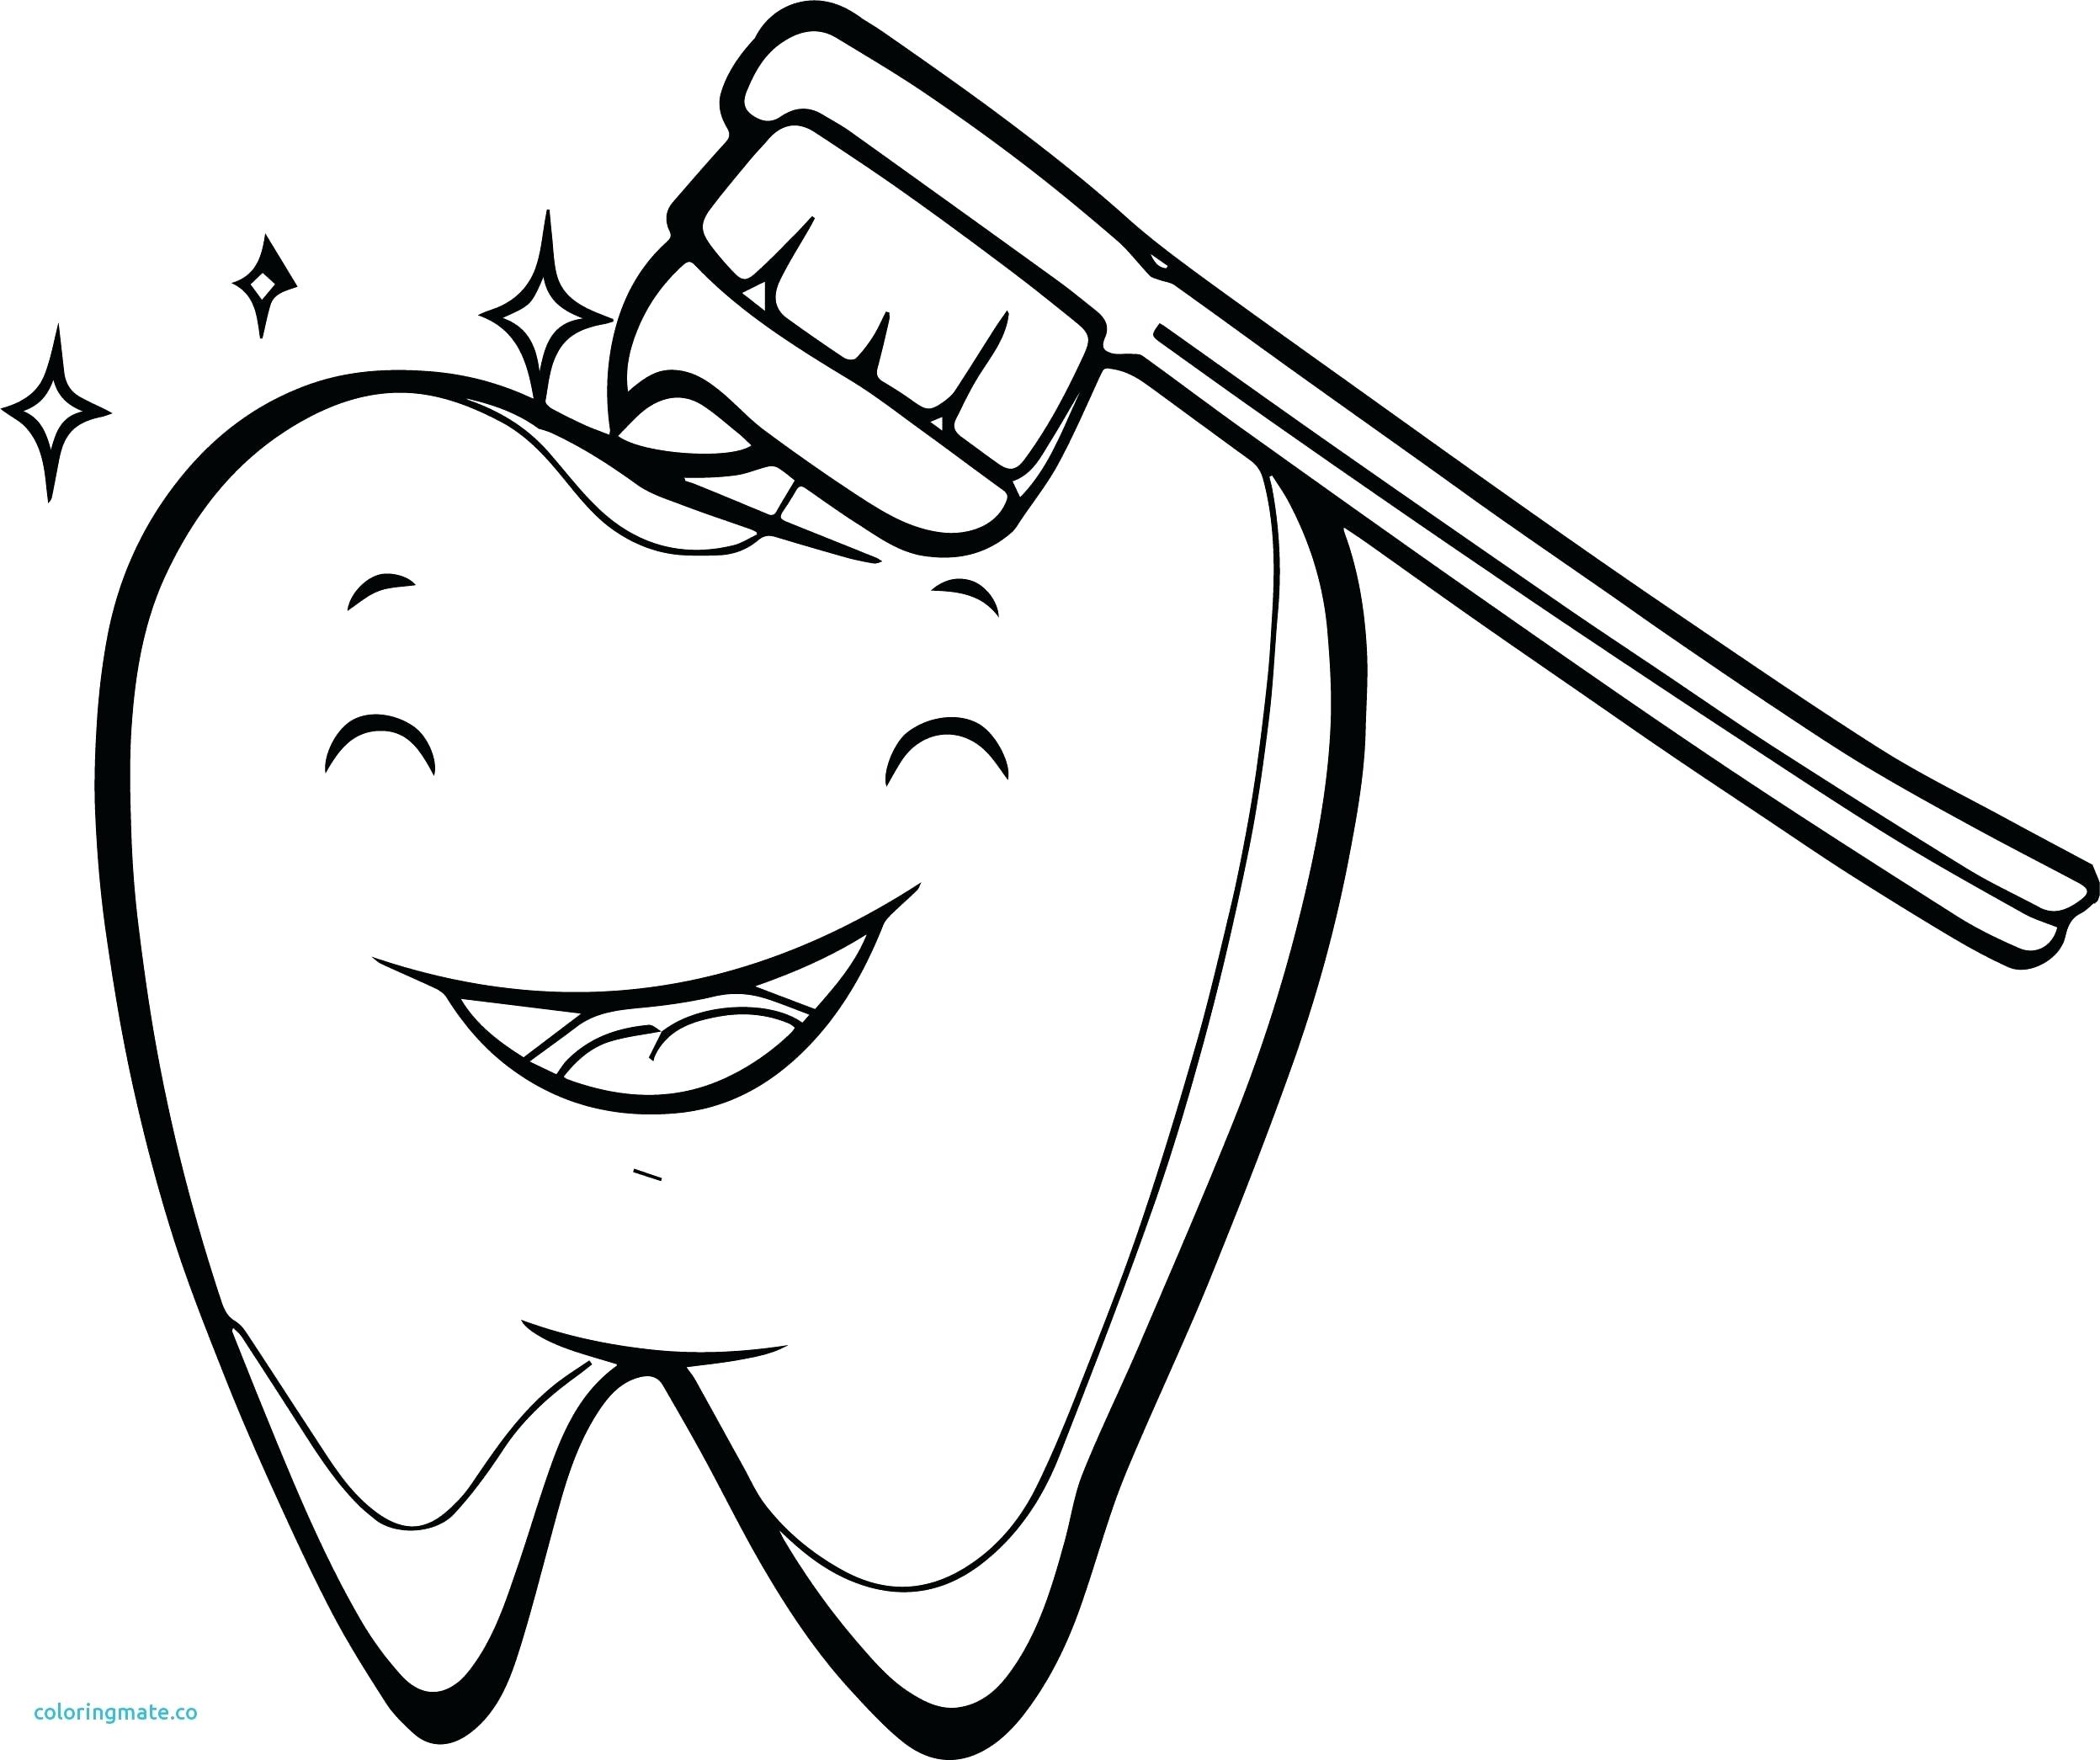 2495x2091 Coloring Brushing Teeth Coloring Page Pages Download Large Image